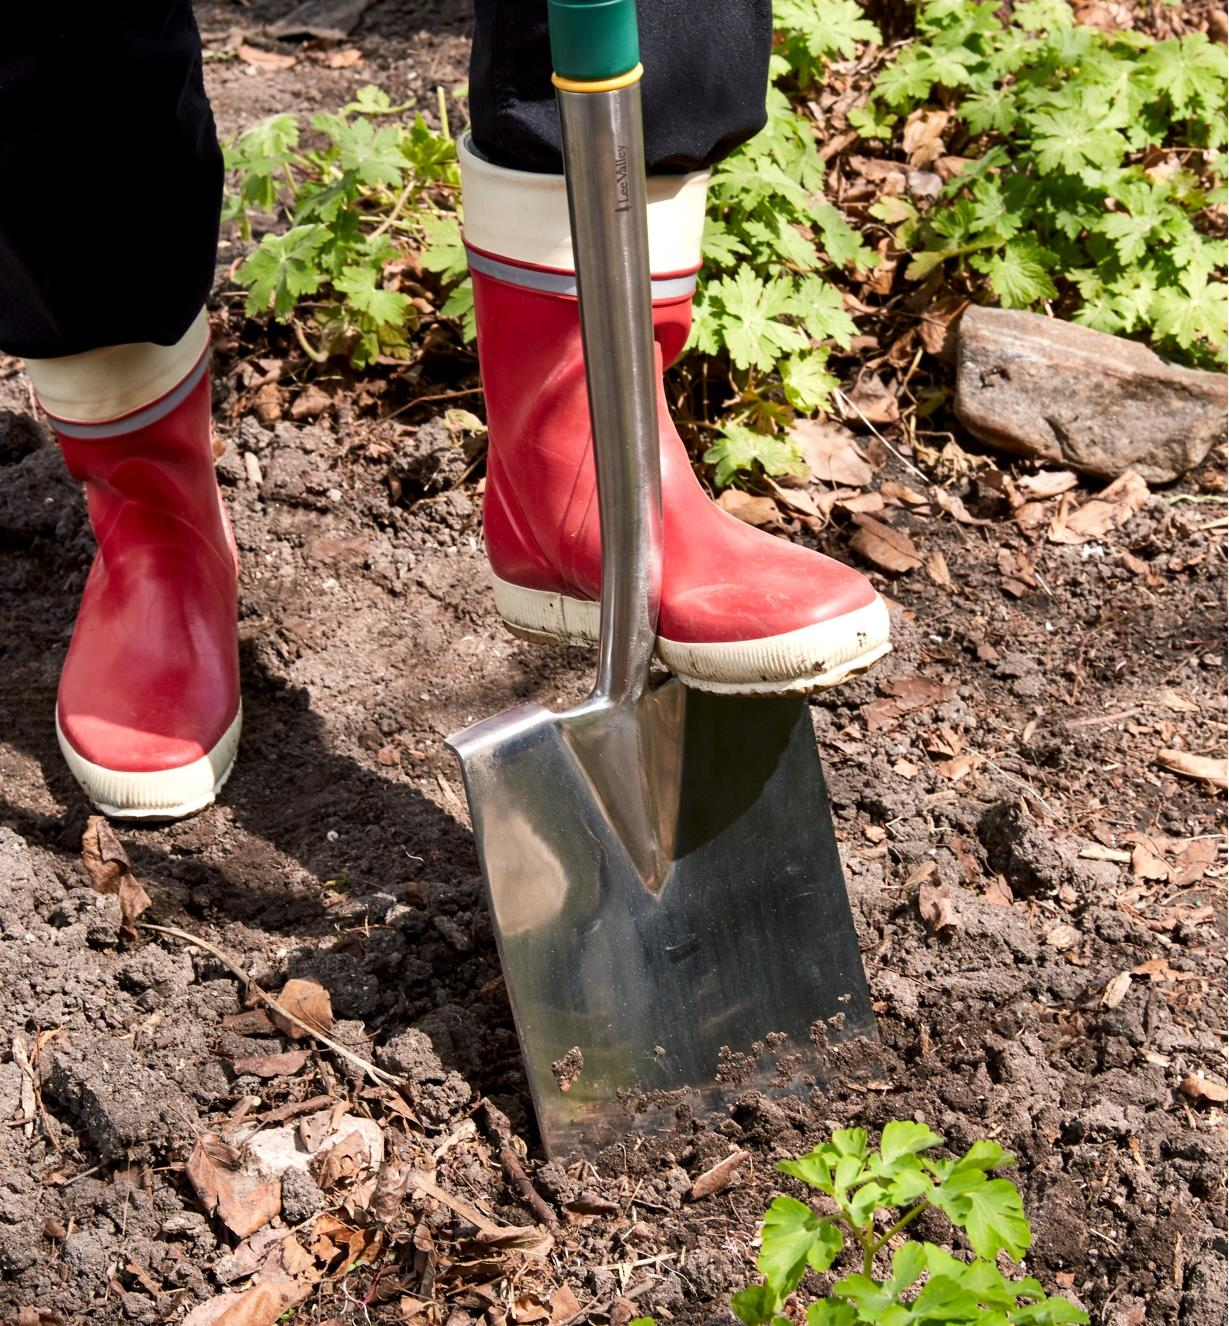 Stepping on the foot tread of a stainless-steel digging spade to push it into the soil